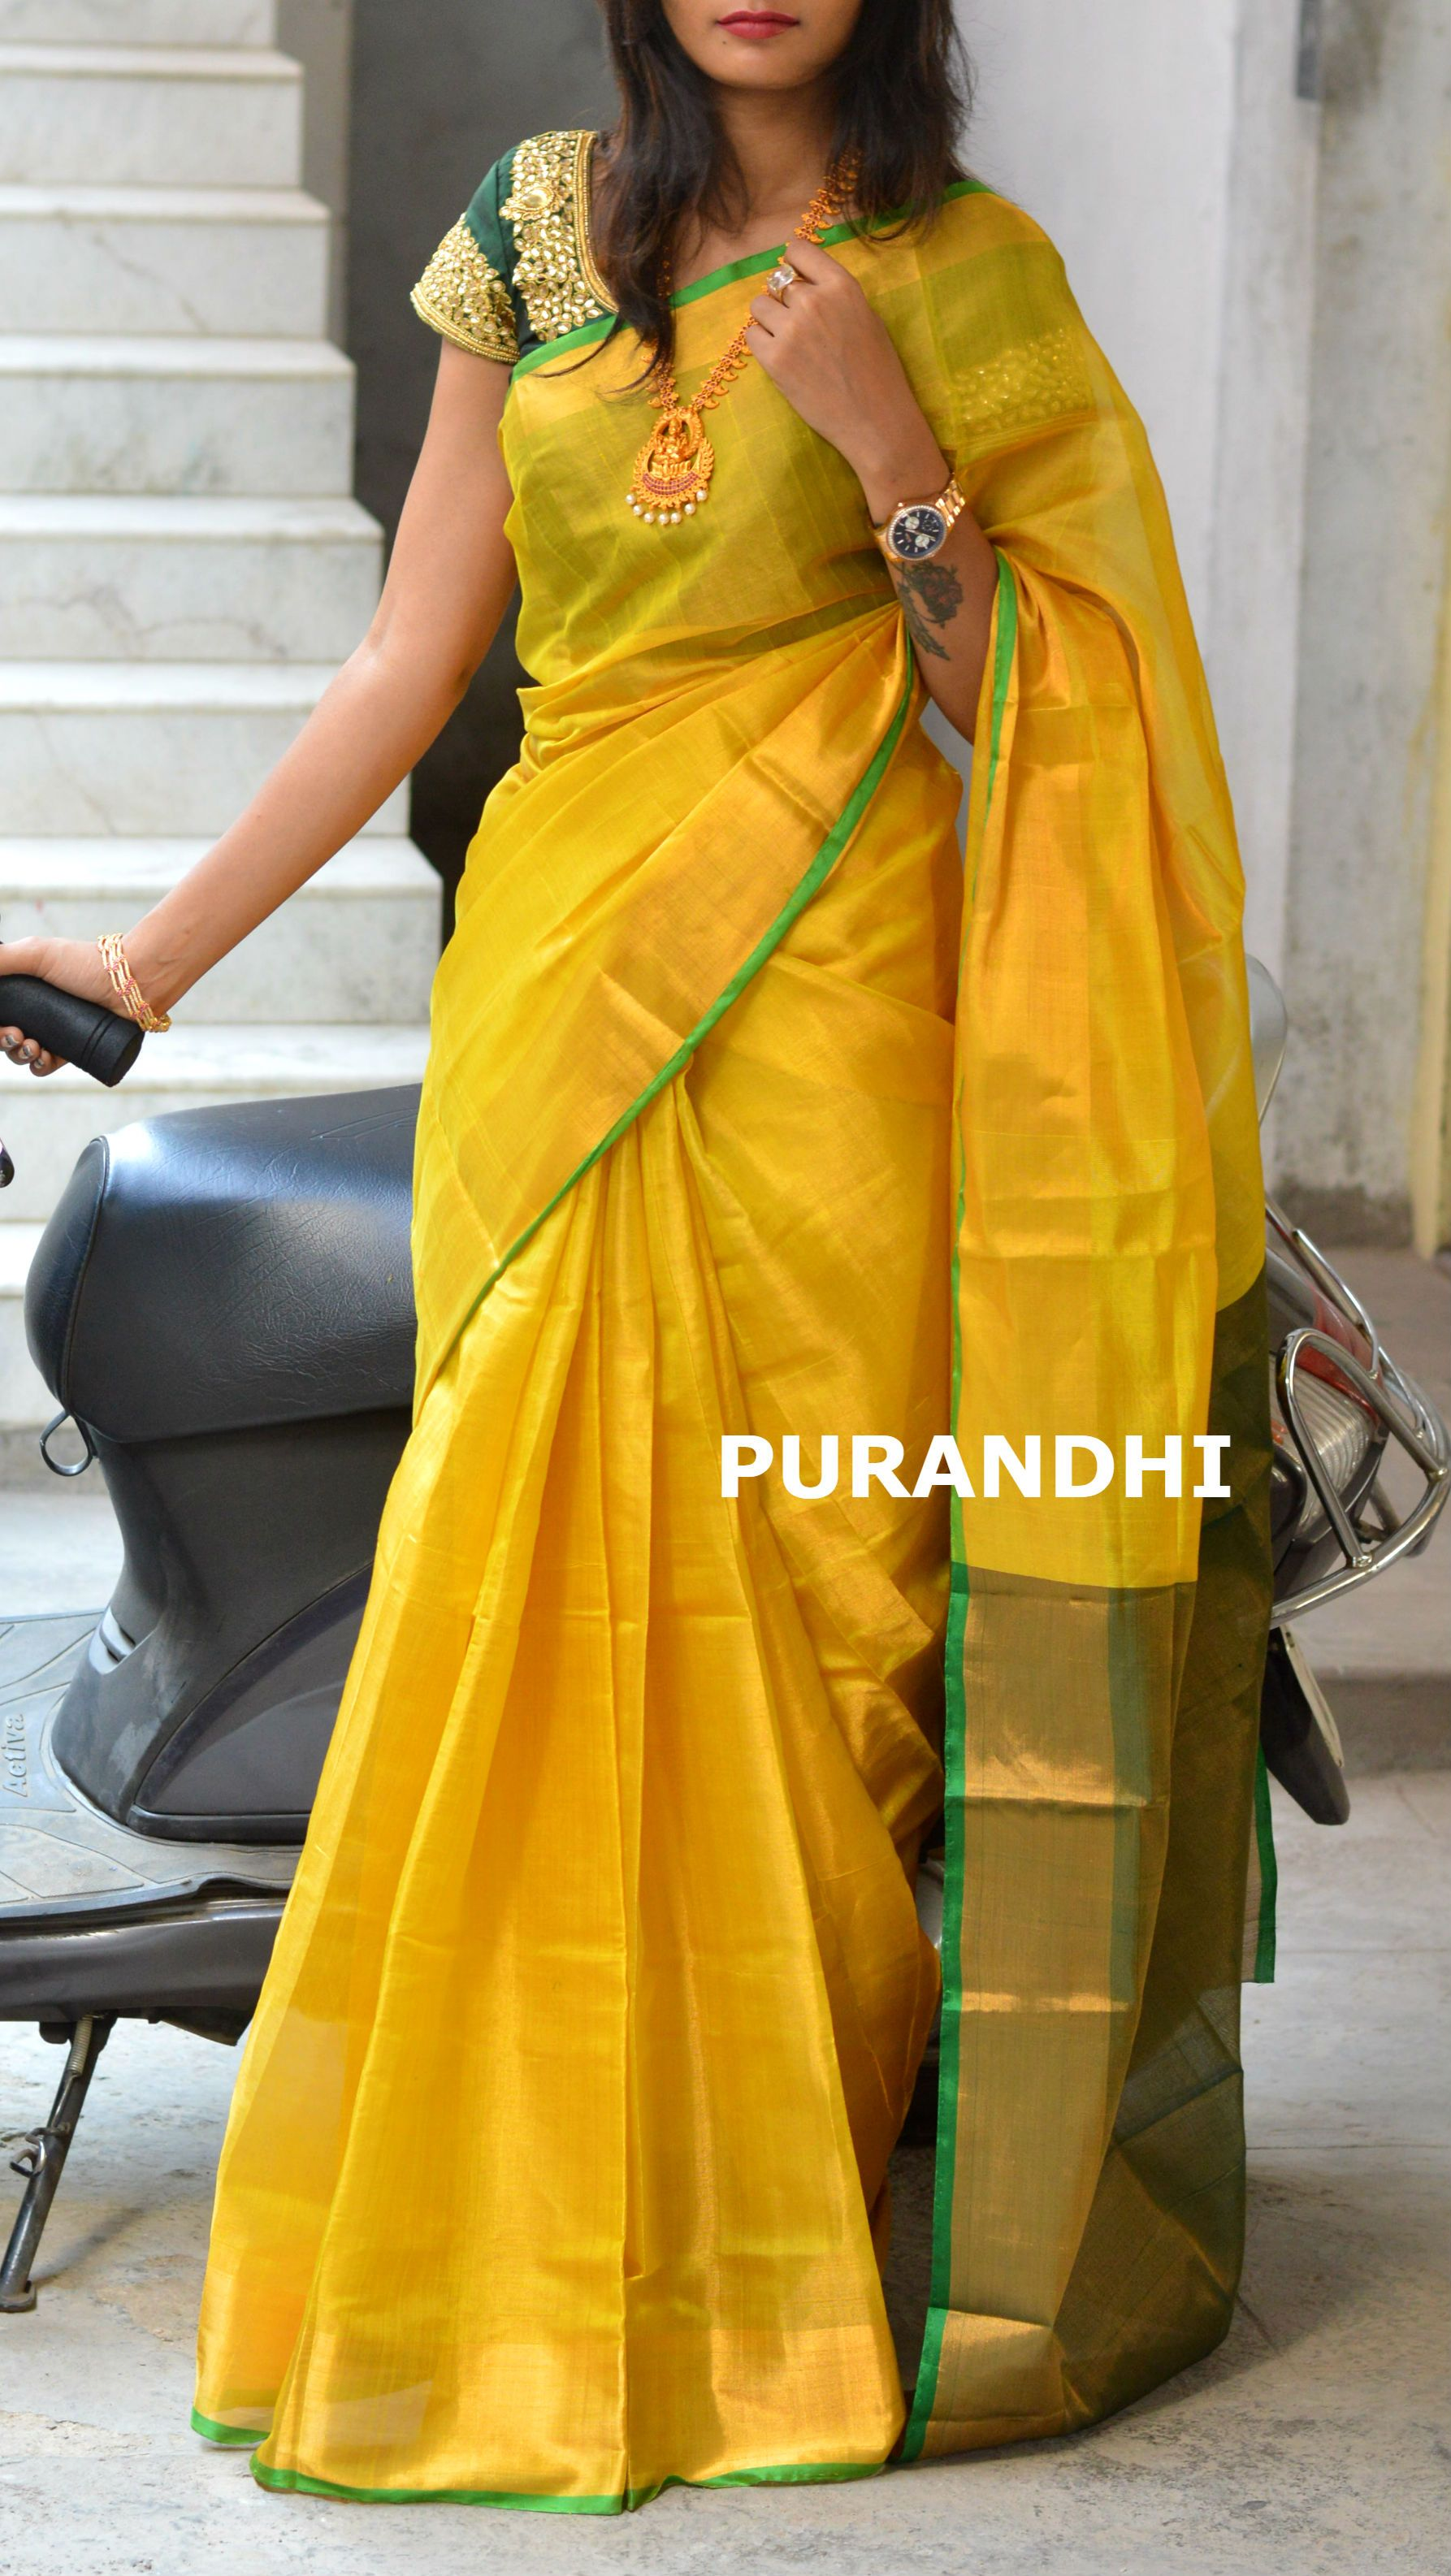 35b238e83f1f09 Yellow and Bottle green uppada tissue saree. For more details please  contact us on whats app   9701673187 Email   purandhistore gmail.com